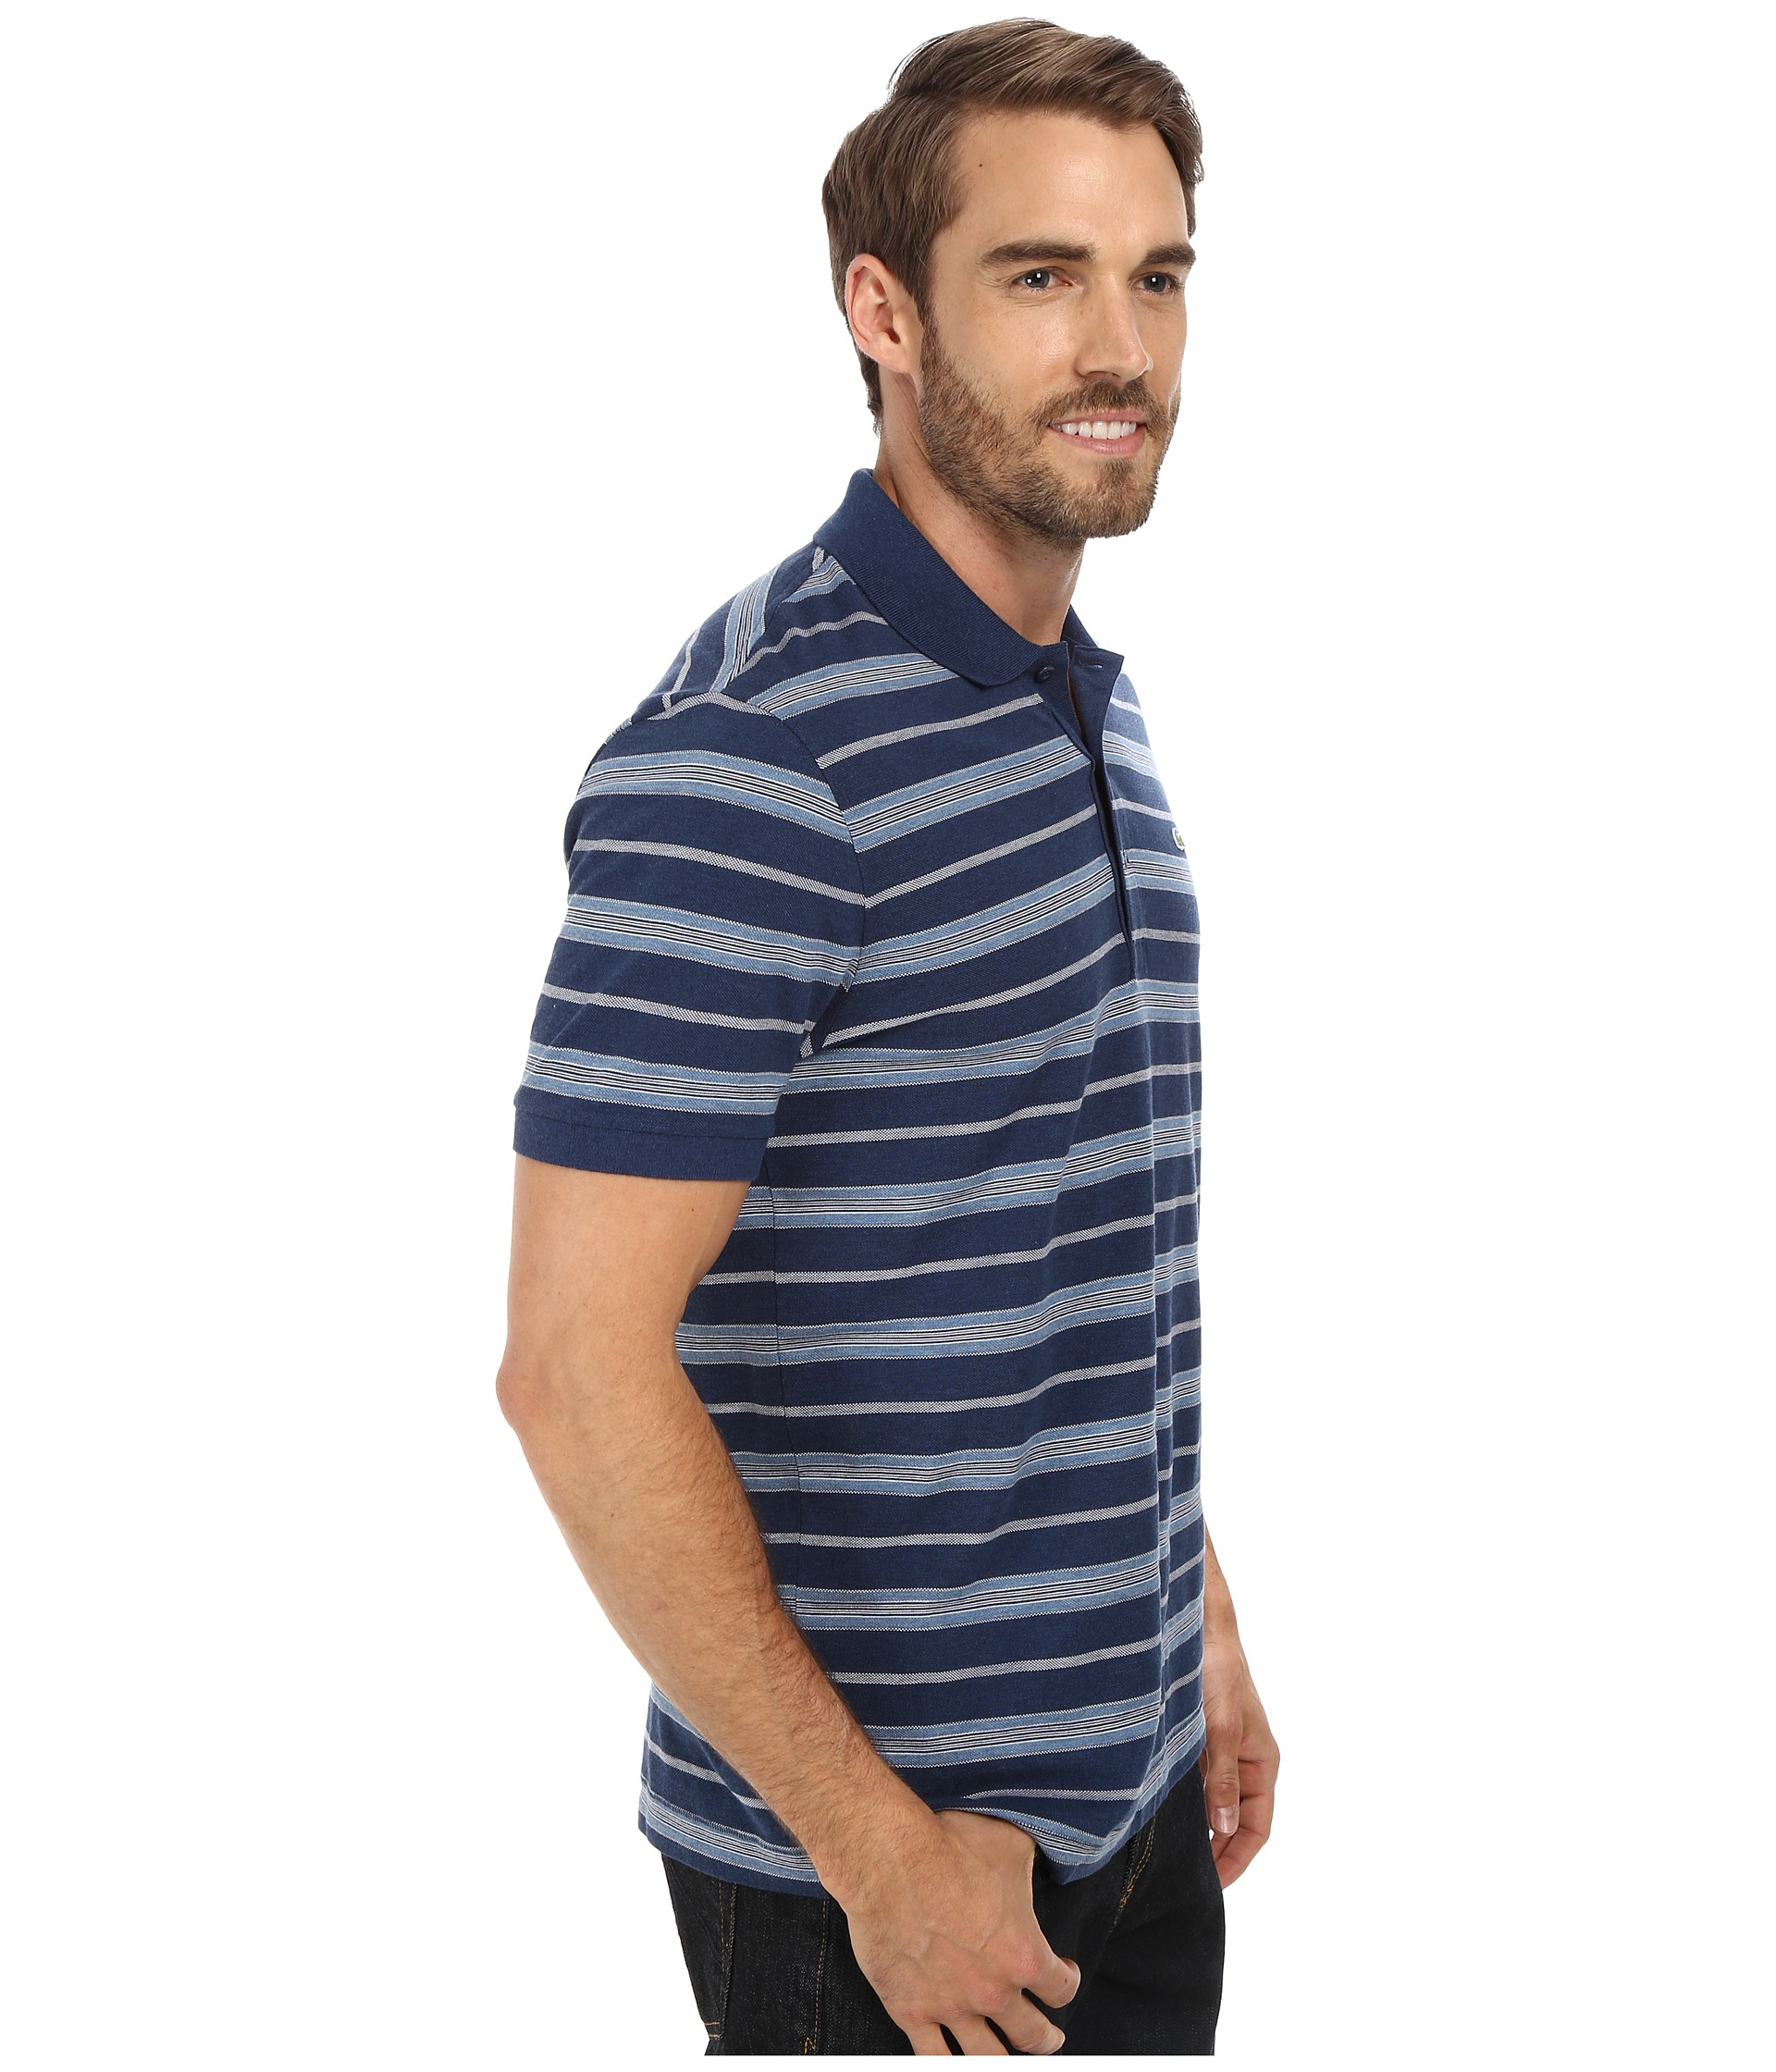 Lacoste cotton stretch pique jersey stripe polo in blue for Lacoste stripe pique polo shirt